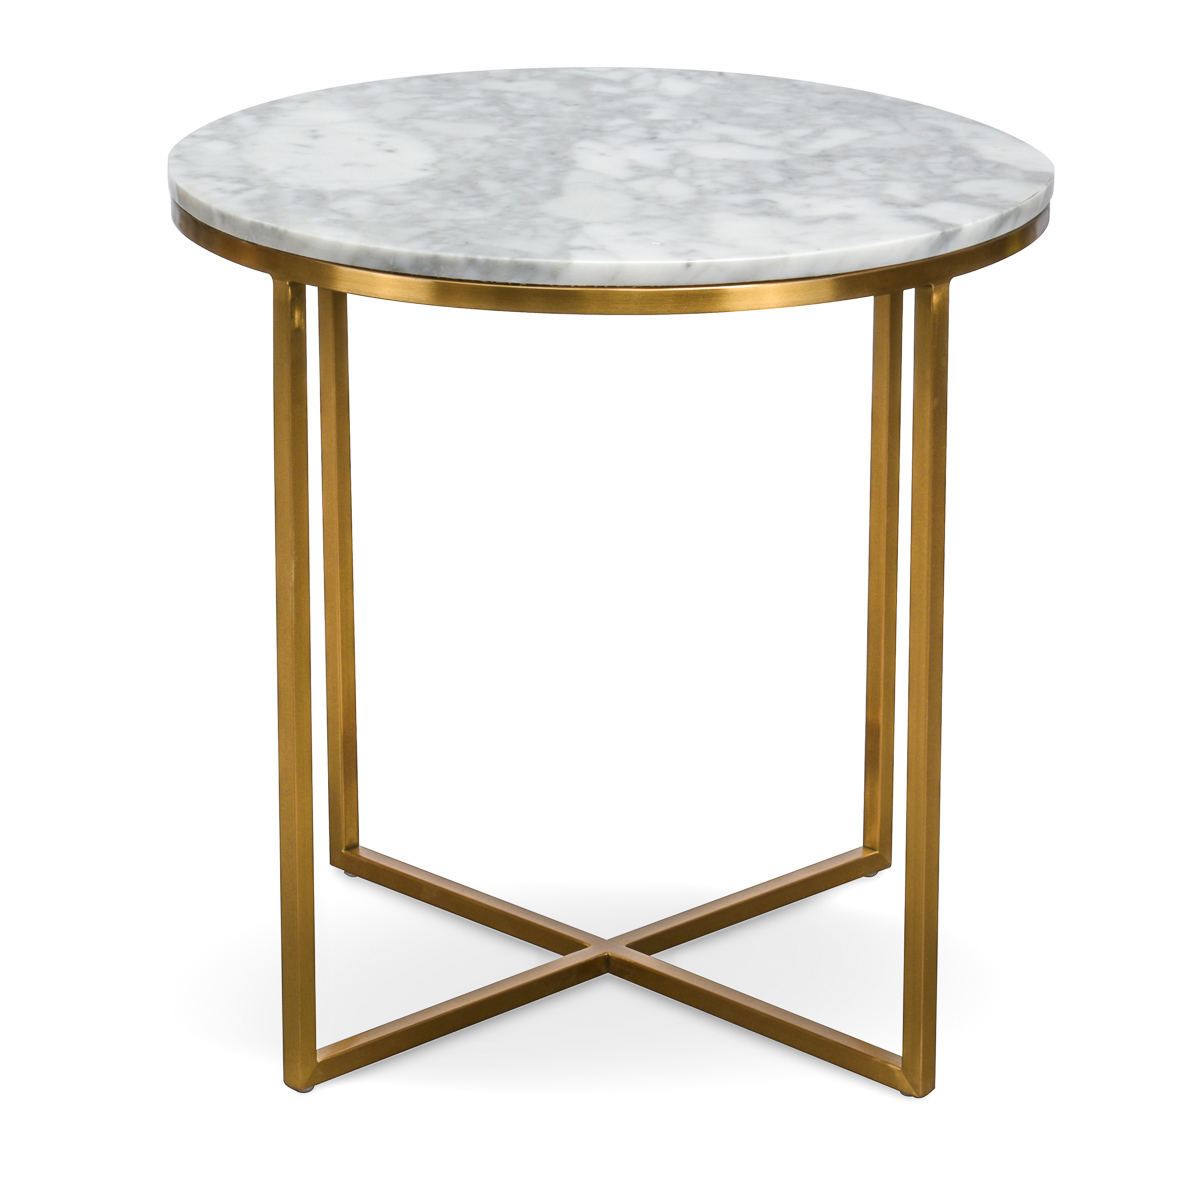 the super free target black side table mira road round glass bedside sevenstonesinc lorenz marble wood decorator end small square pedestal ideas interior secrets metal dining